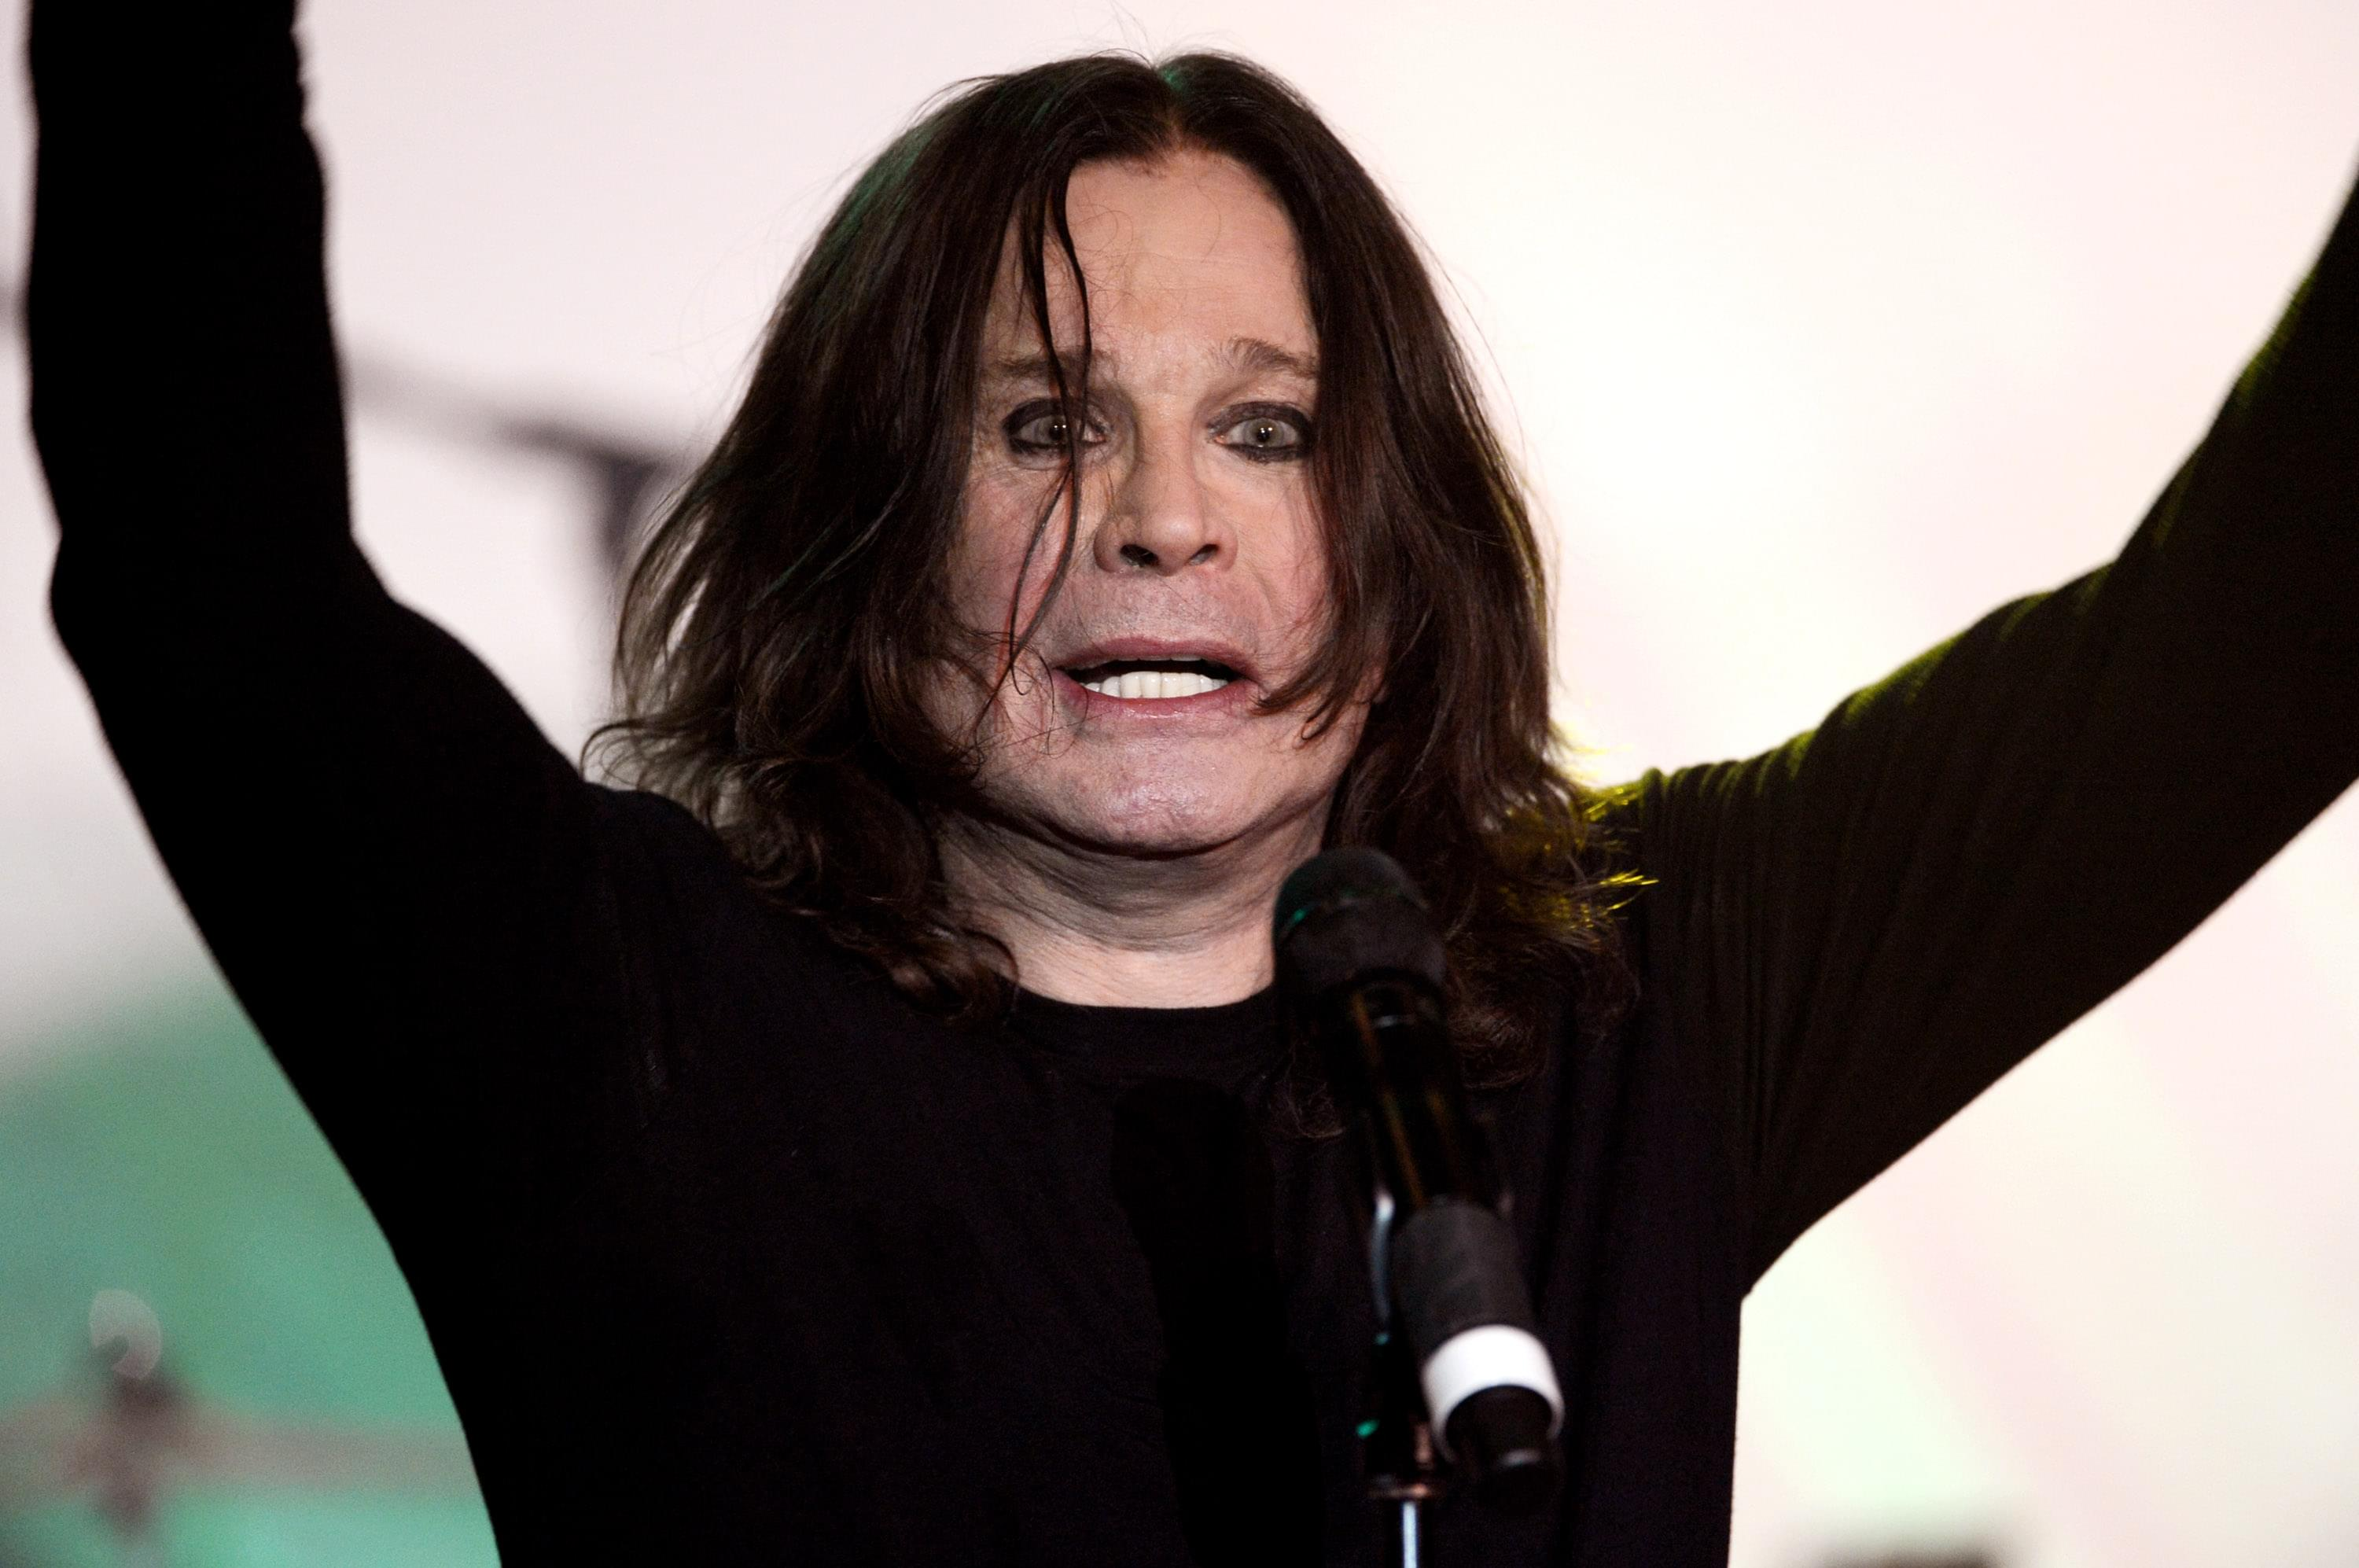 2020 Off To A Bad Start For Ozzy: He's Cancelled His North American Tour